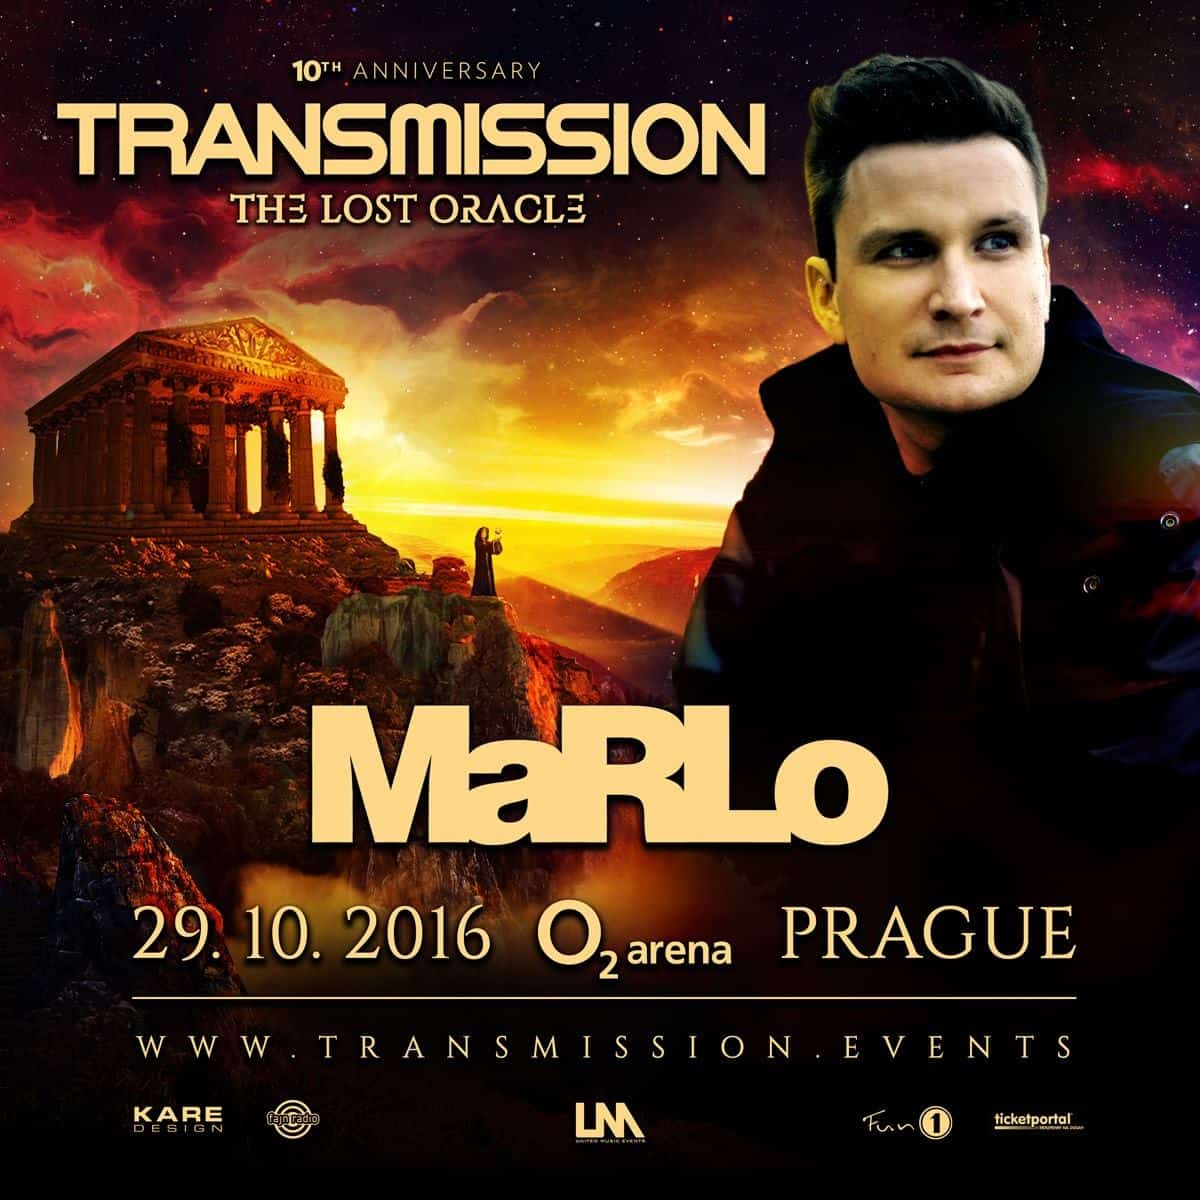 MaRLo live at Transmission - The Lost Oracle (29.10.2016) @ Prague, Czech Republic